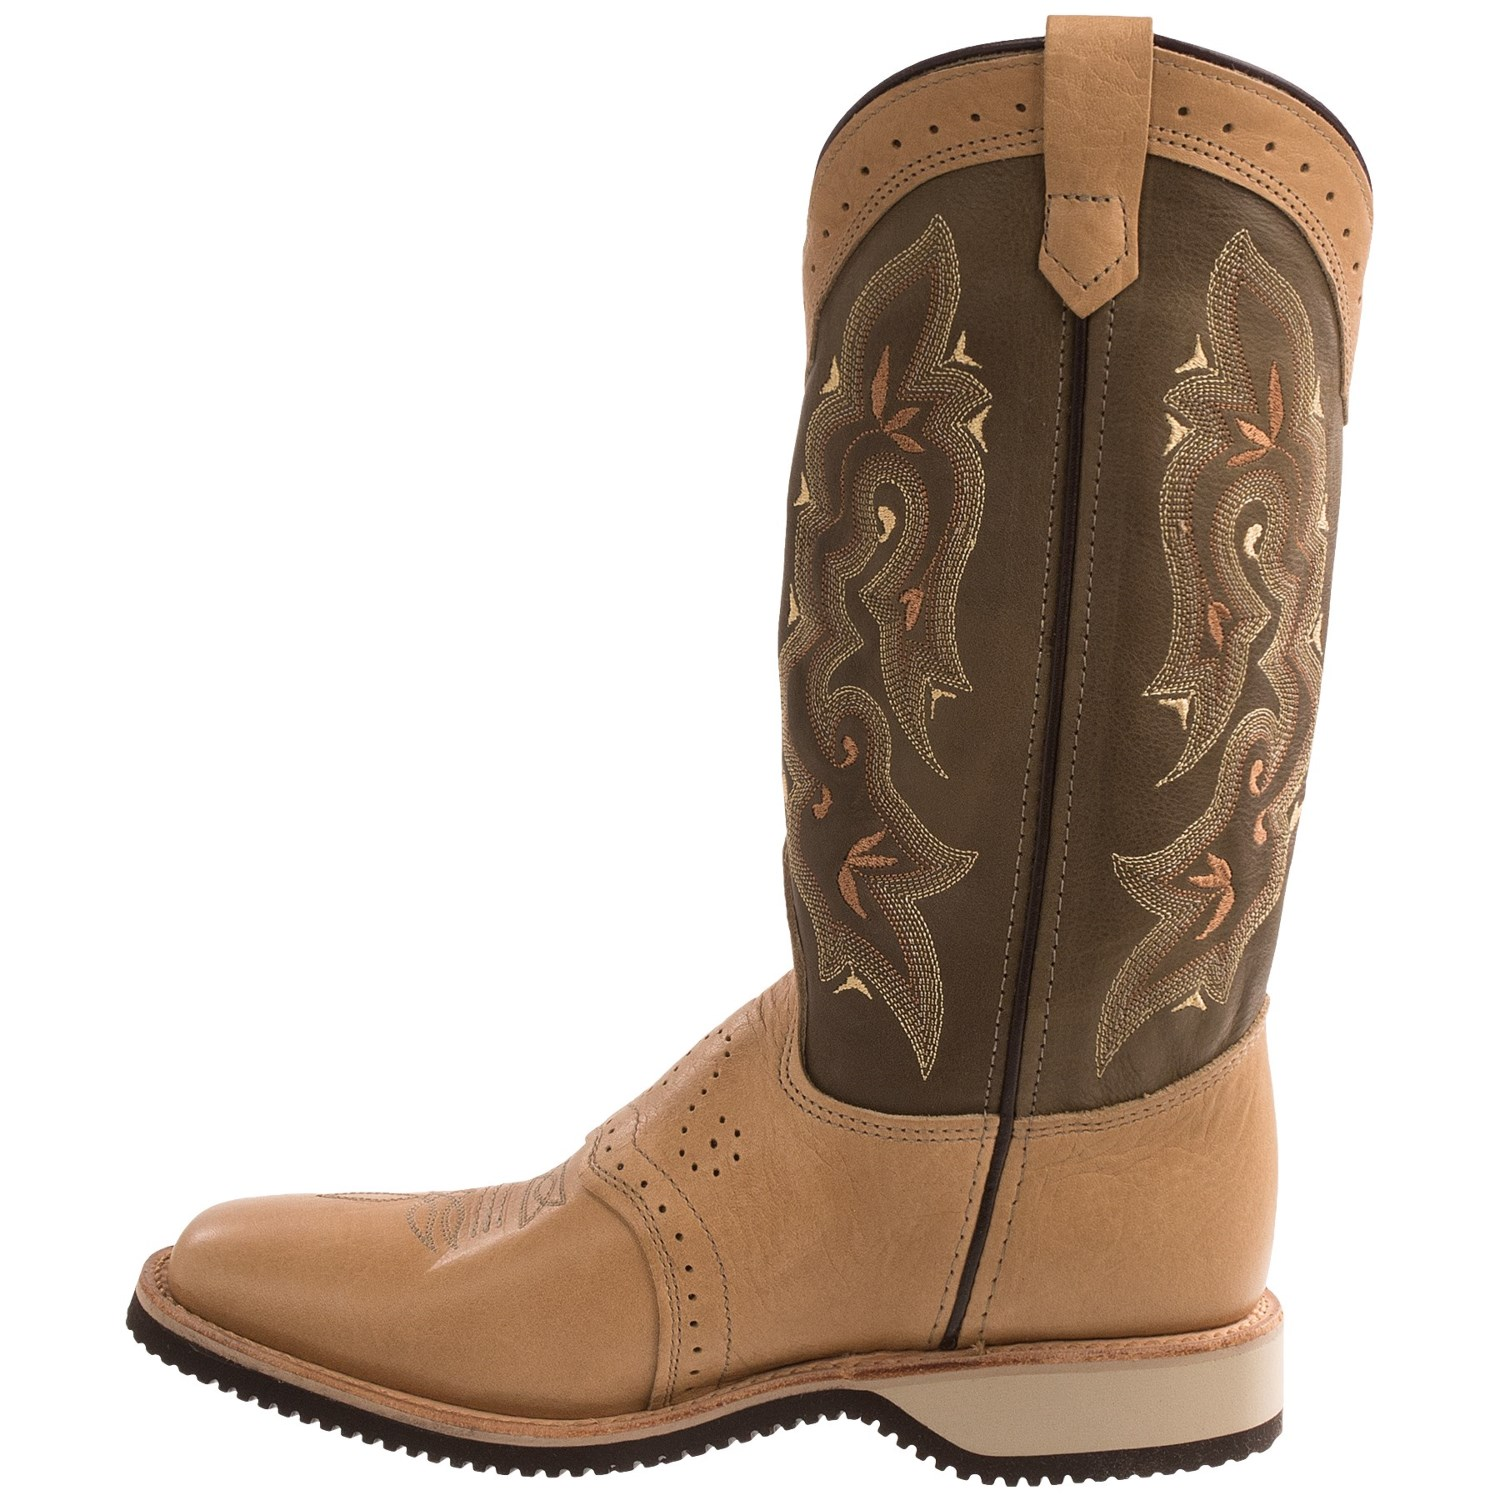 Elegant Double H Boots Women39s USAMade Square Toe Cowboy Boots DH5101